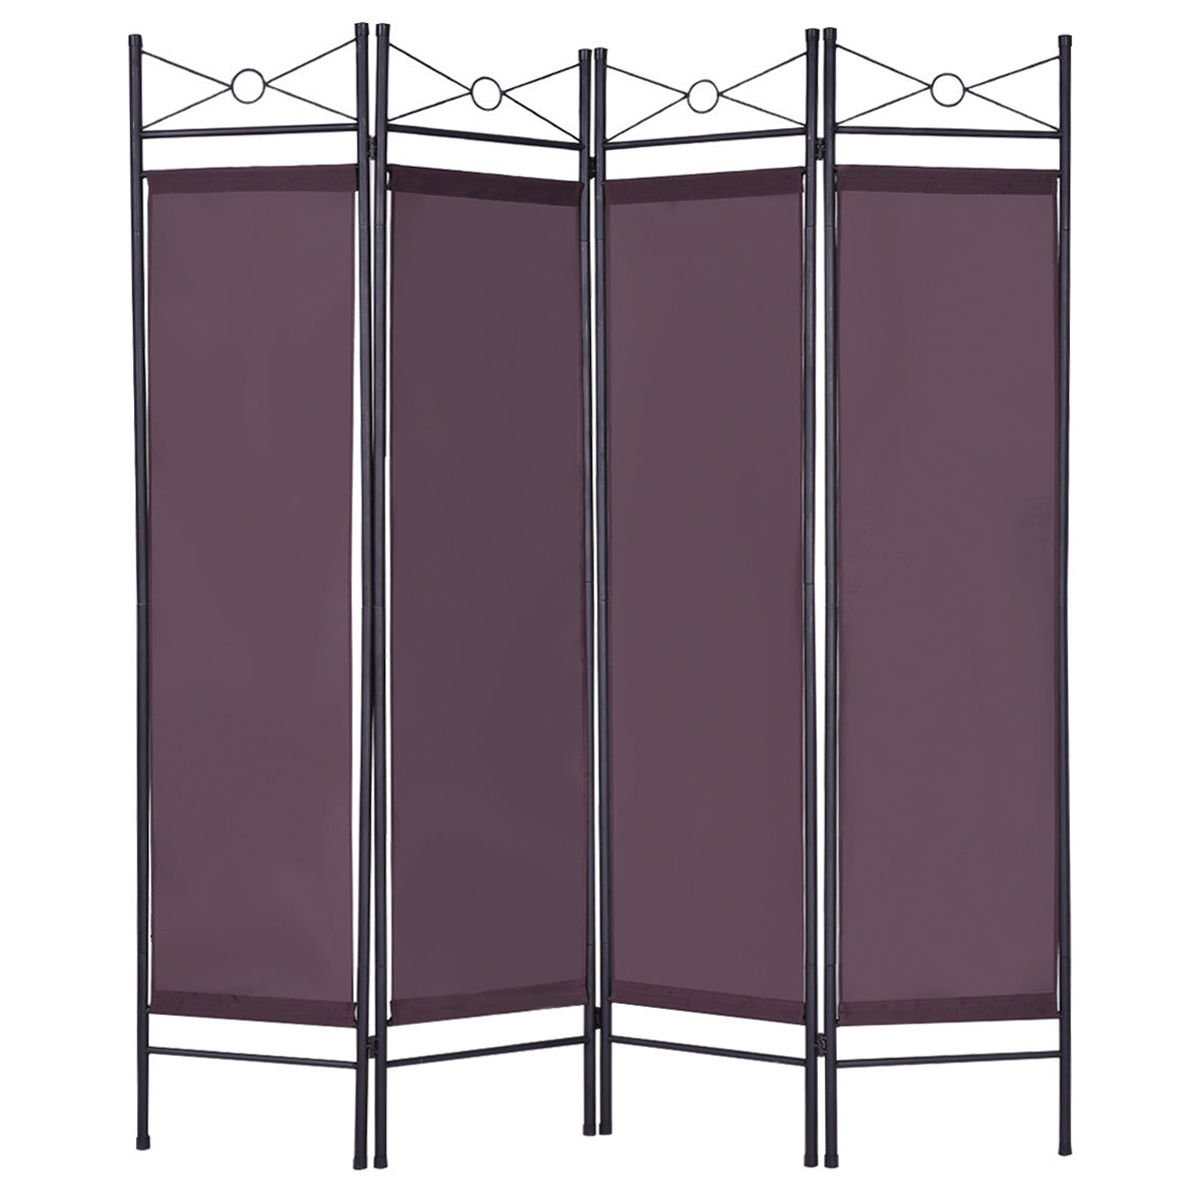 privacy screens room dividers best under 100 giantex four panel folding